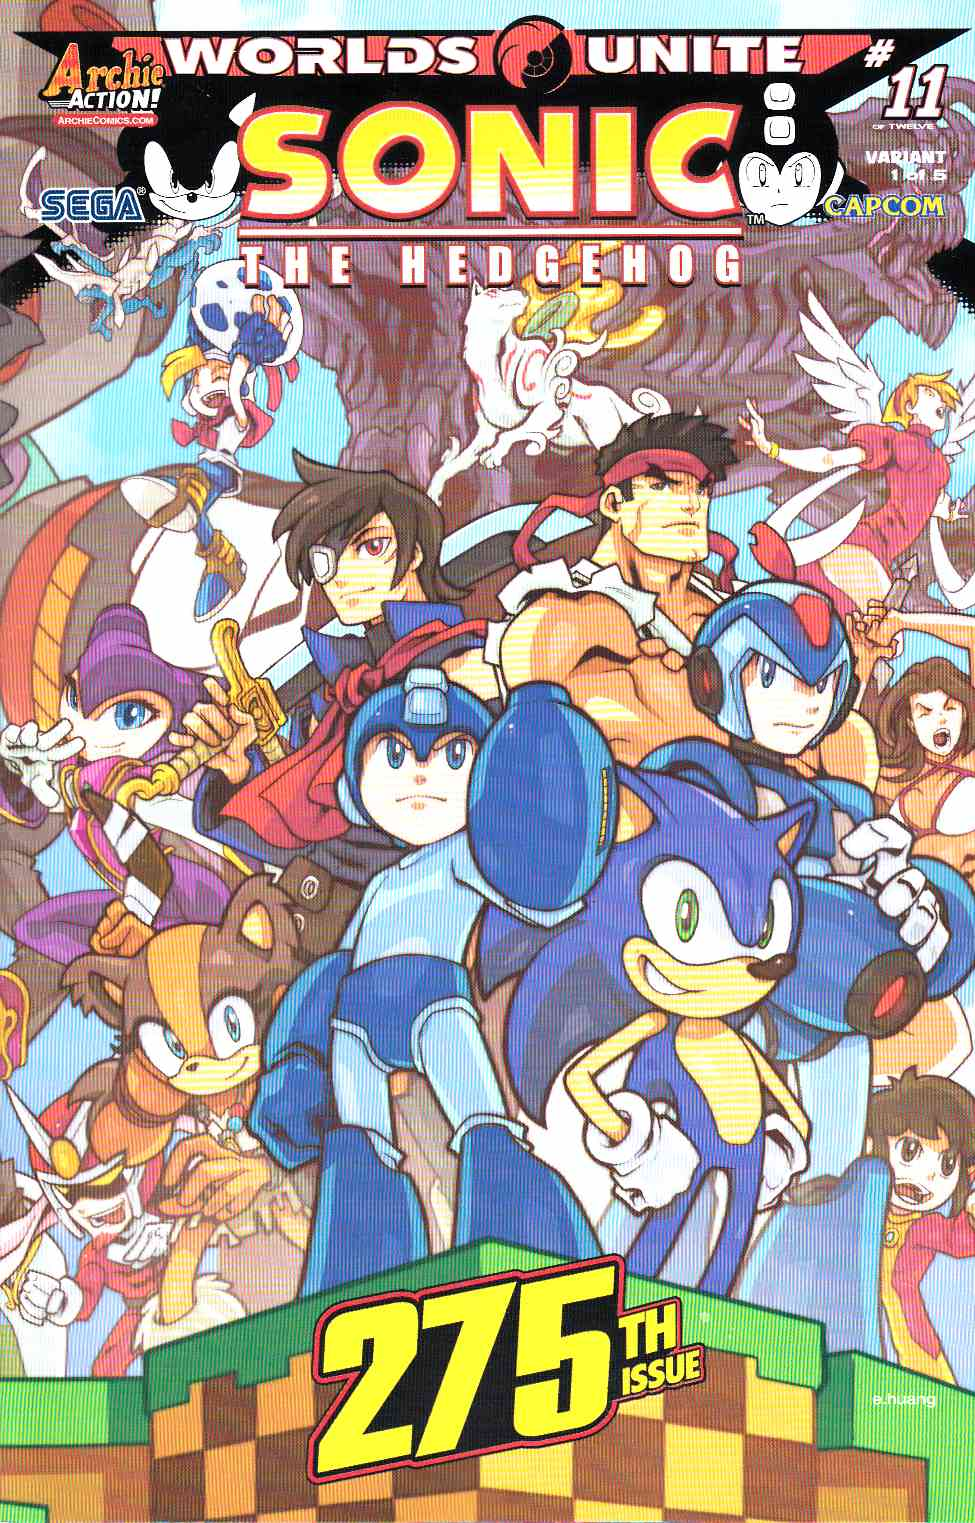 Sonic the Hedgehog #275 Huang Wraparound Variant Cover [Archie Comic] THUMBNAIL